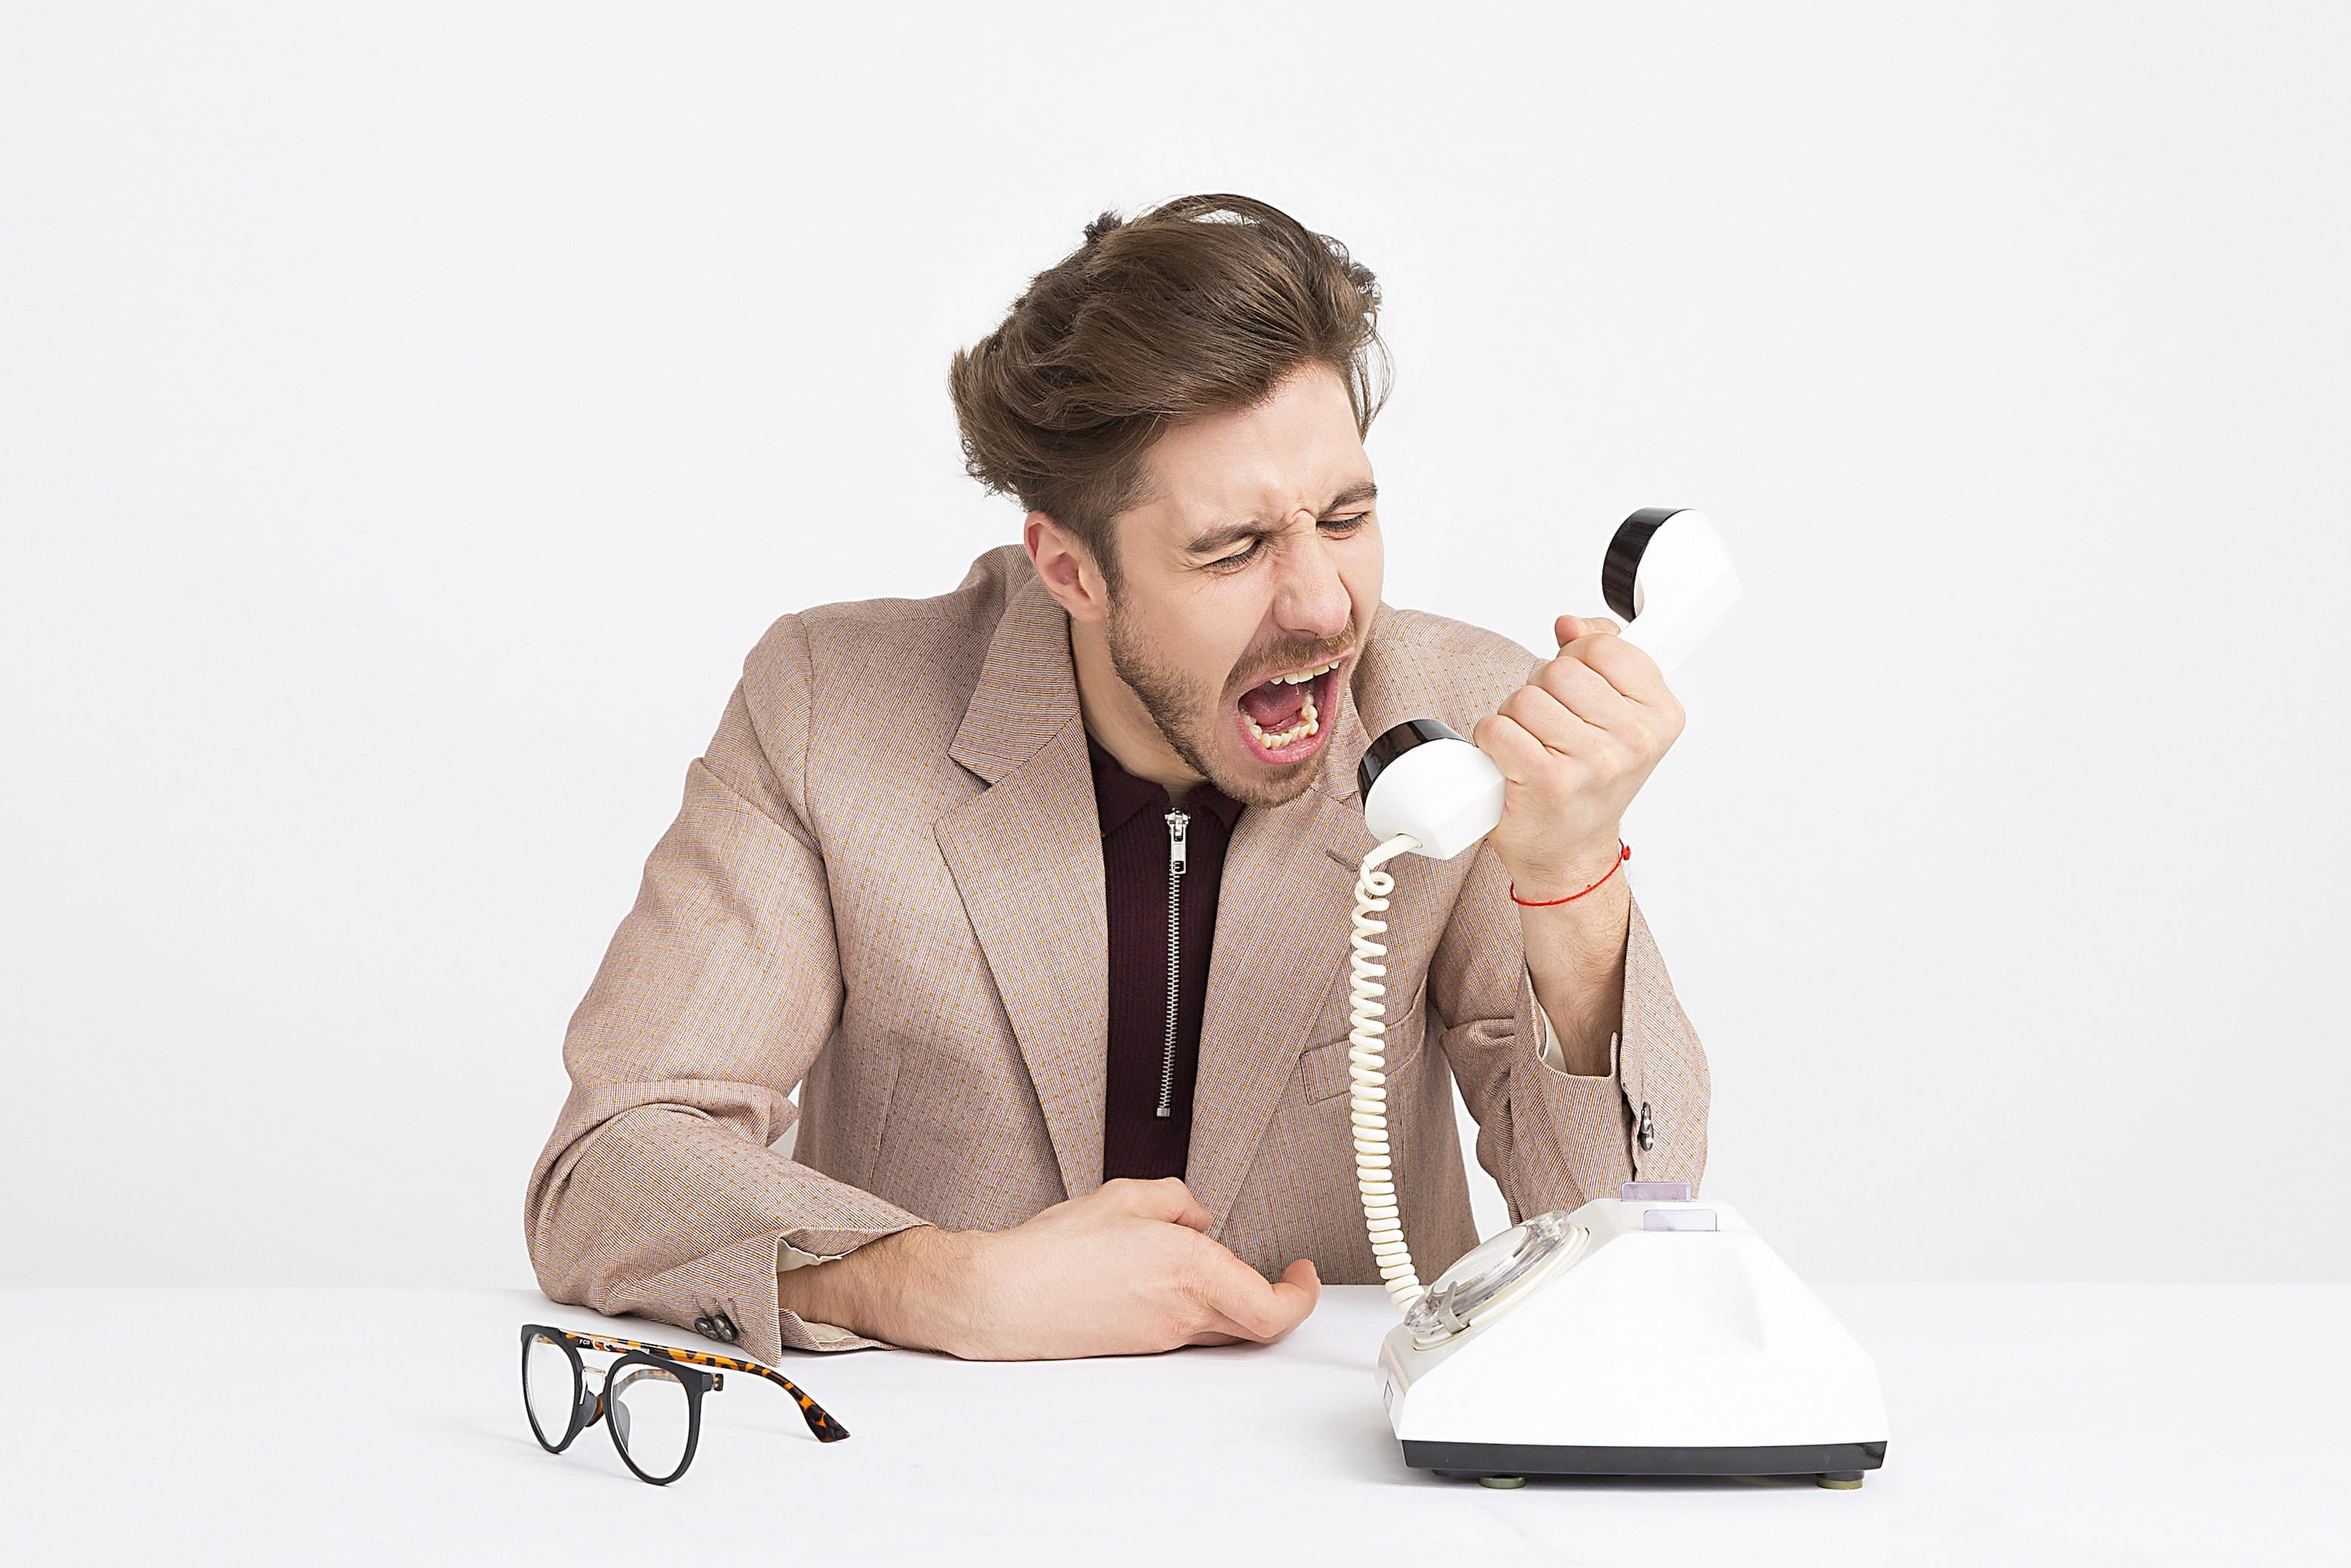 man yelling at phone